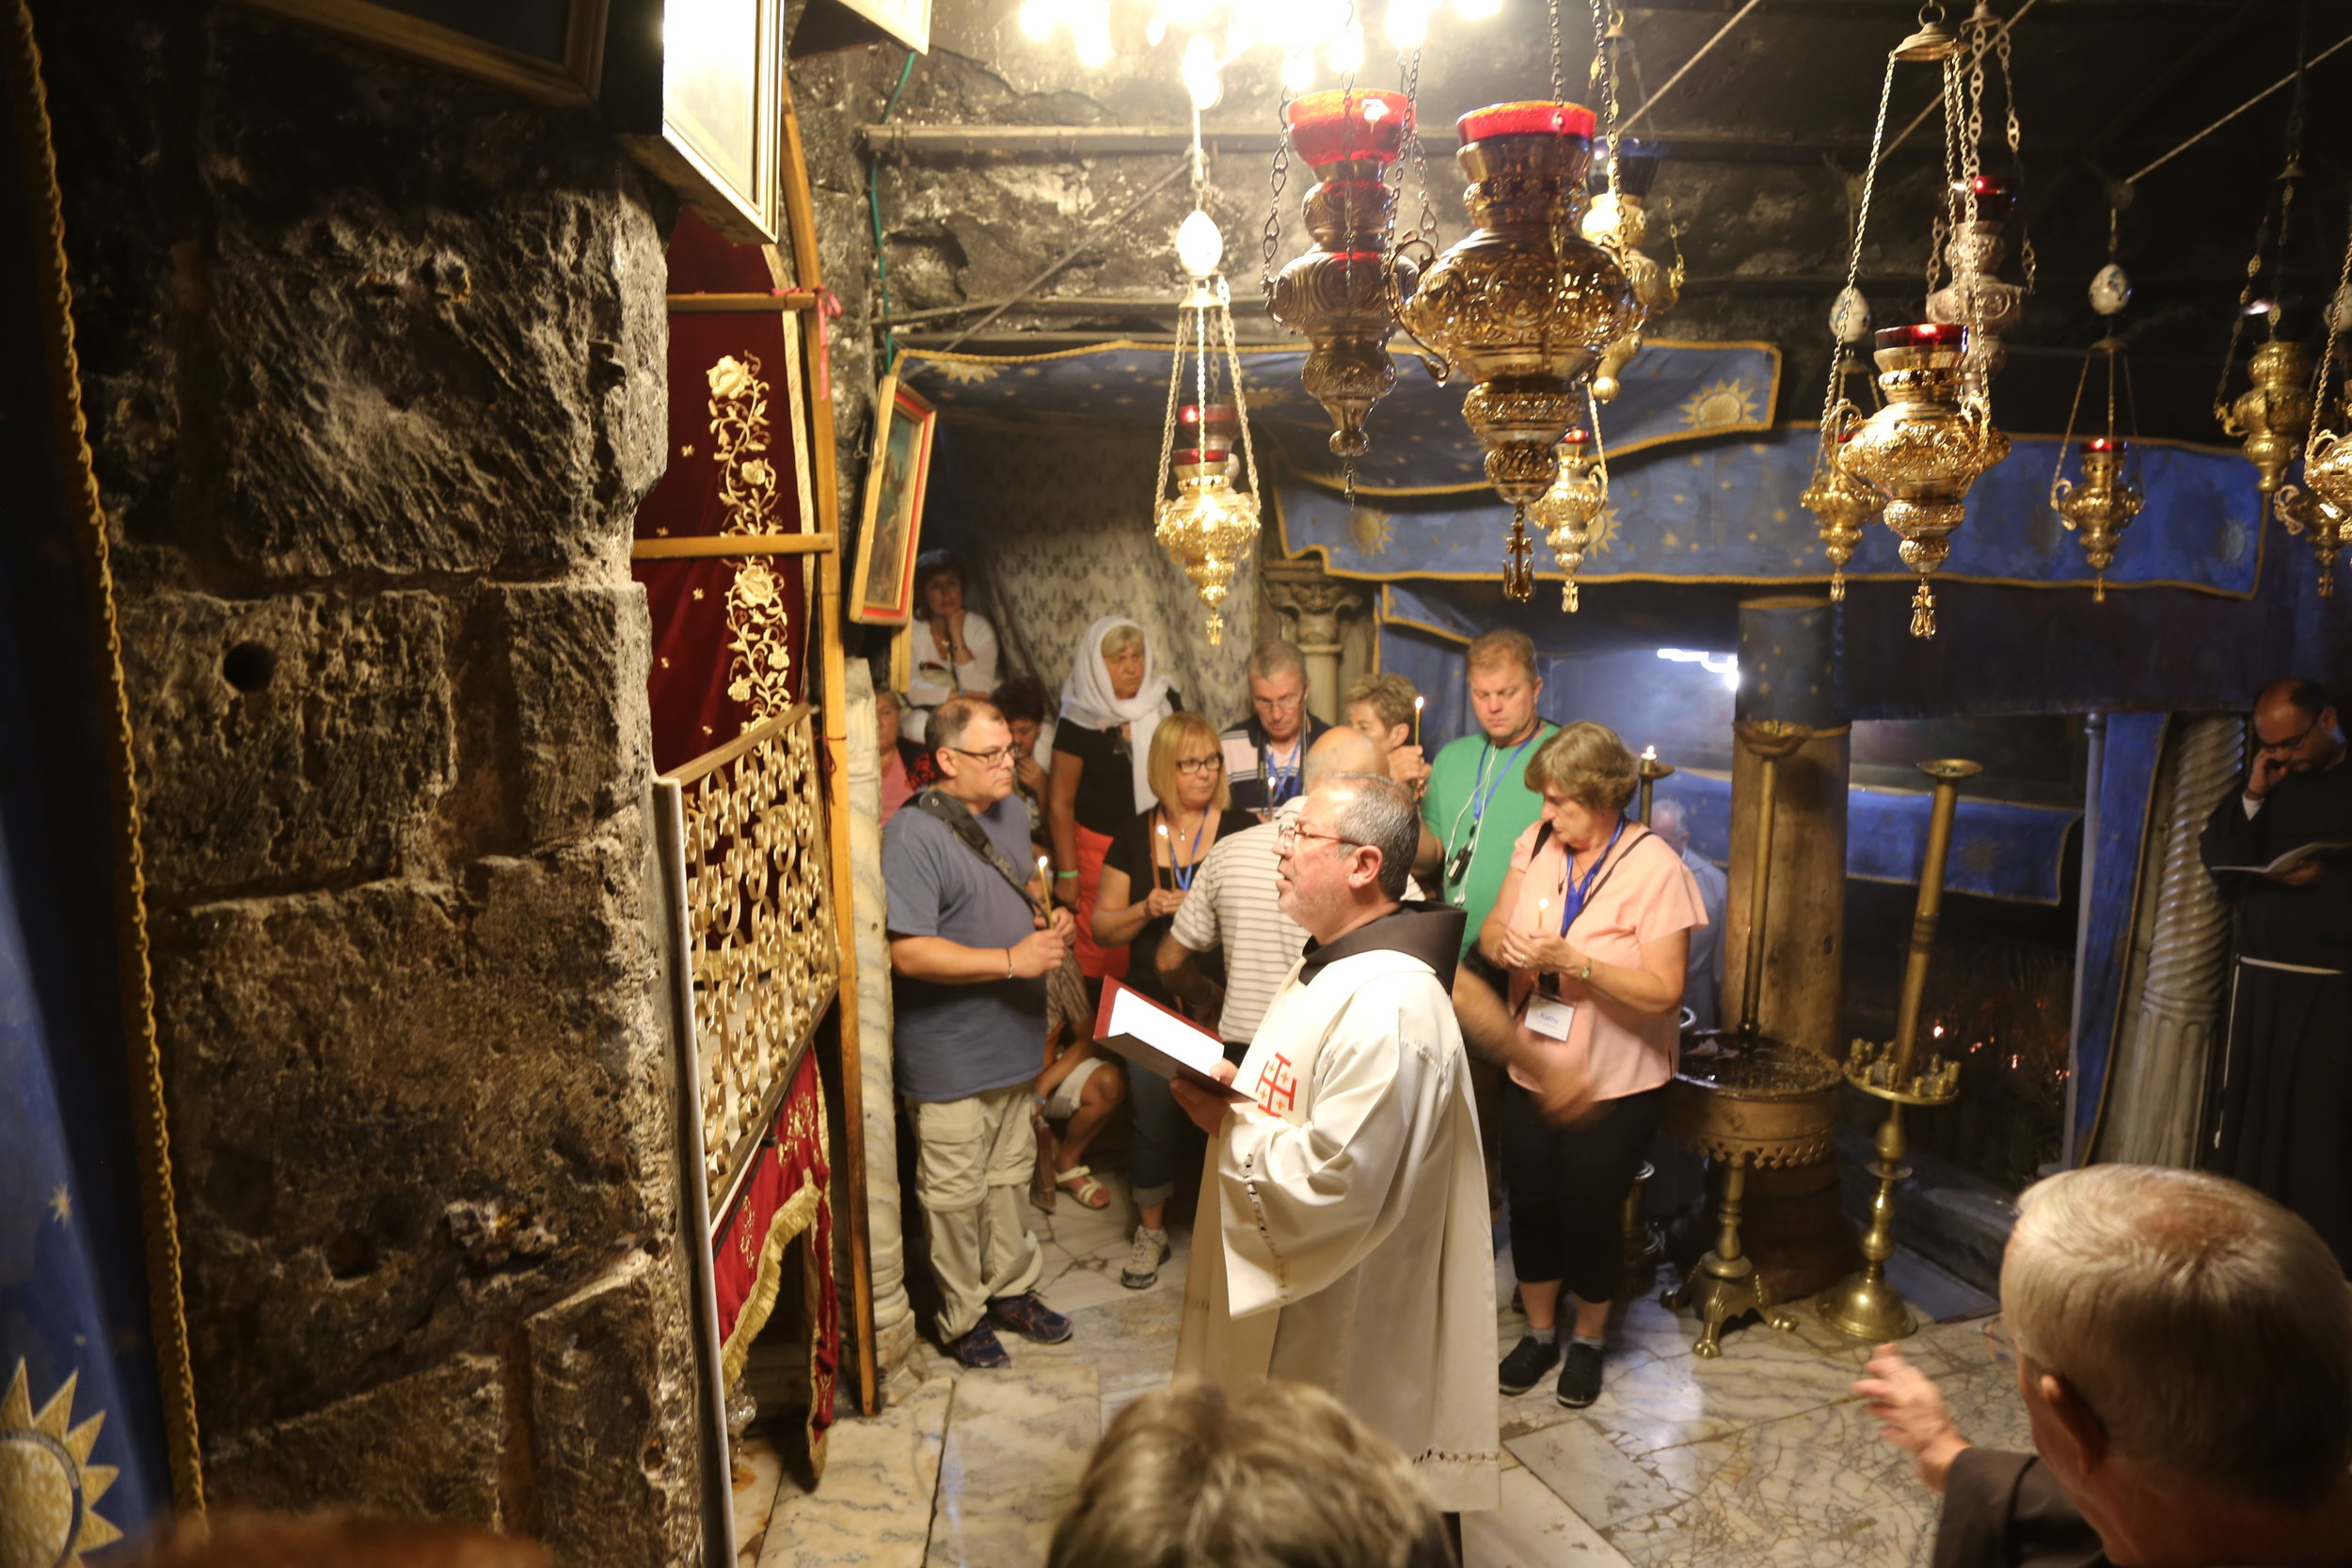 Praying mid-day prayer with the local, Catholic community in Bethlehem at the Nativity Grotto (where Jesus was born) under the Church of the Nativity.